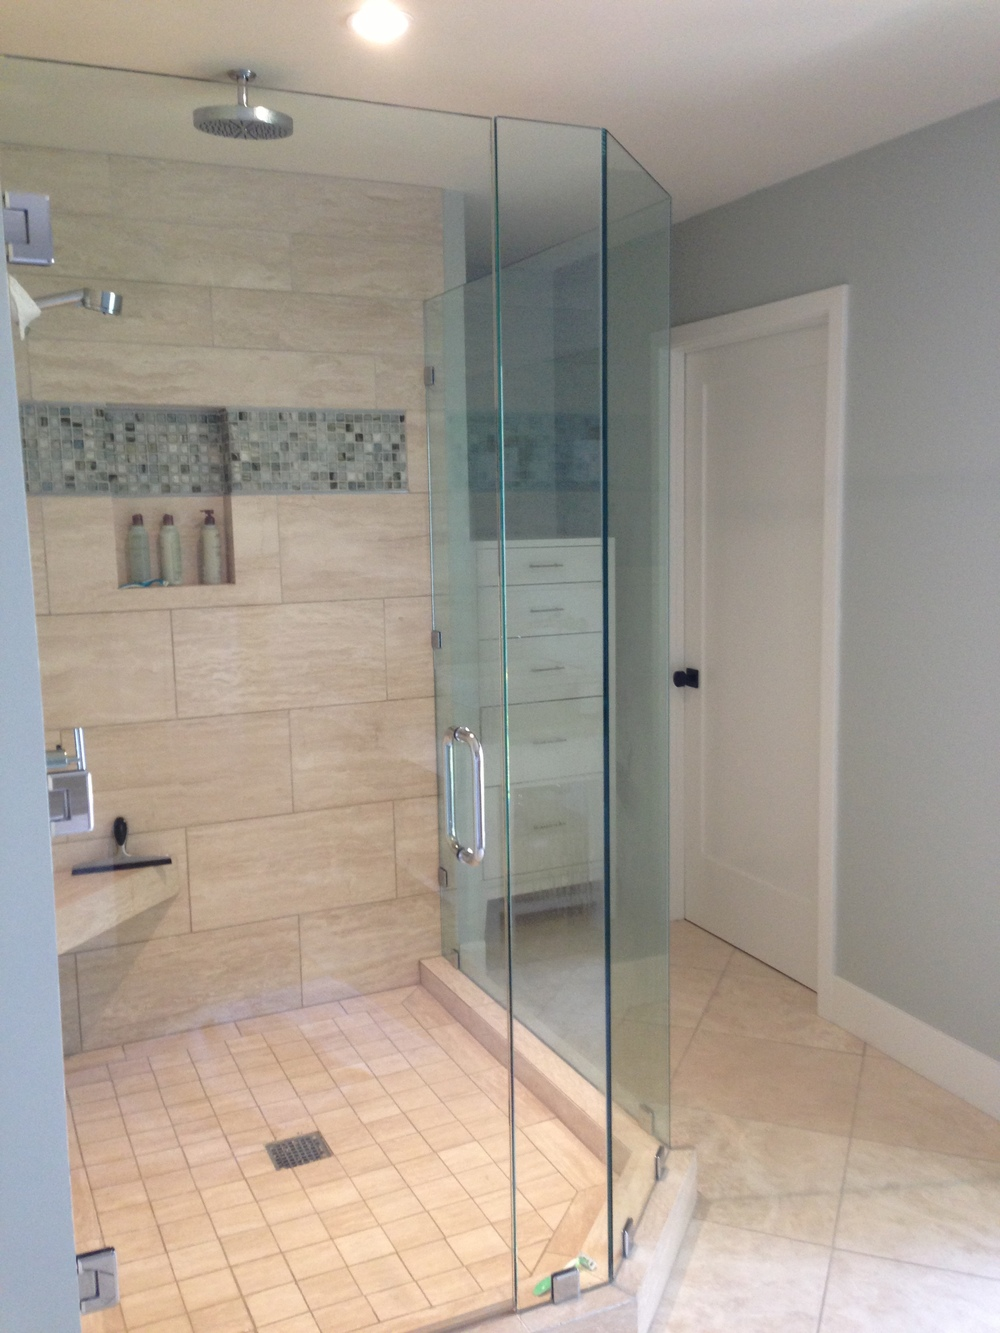 Master shower Lunada Bay Sumi-E glass tile Walker Zanger - Ventura California rental house review tour